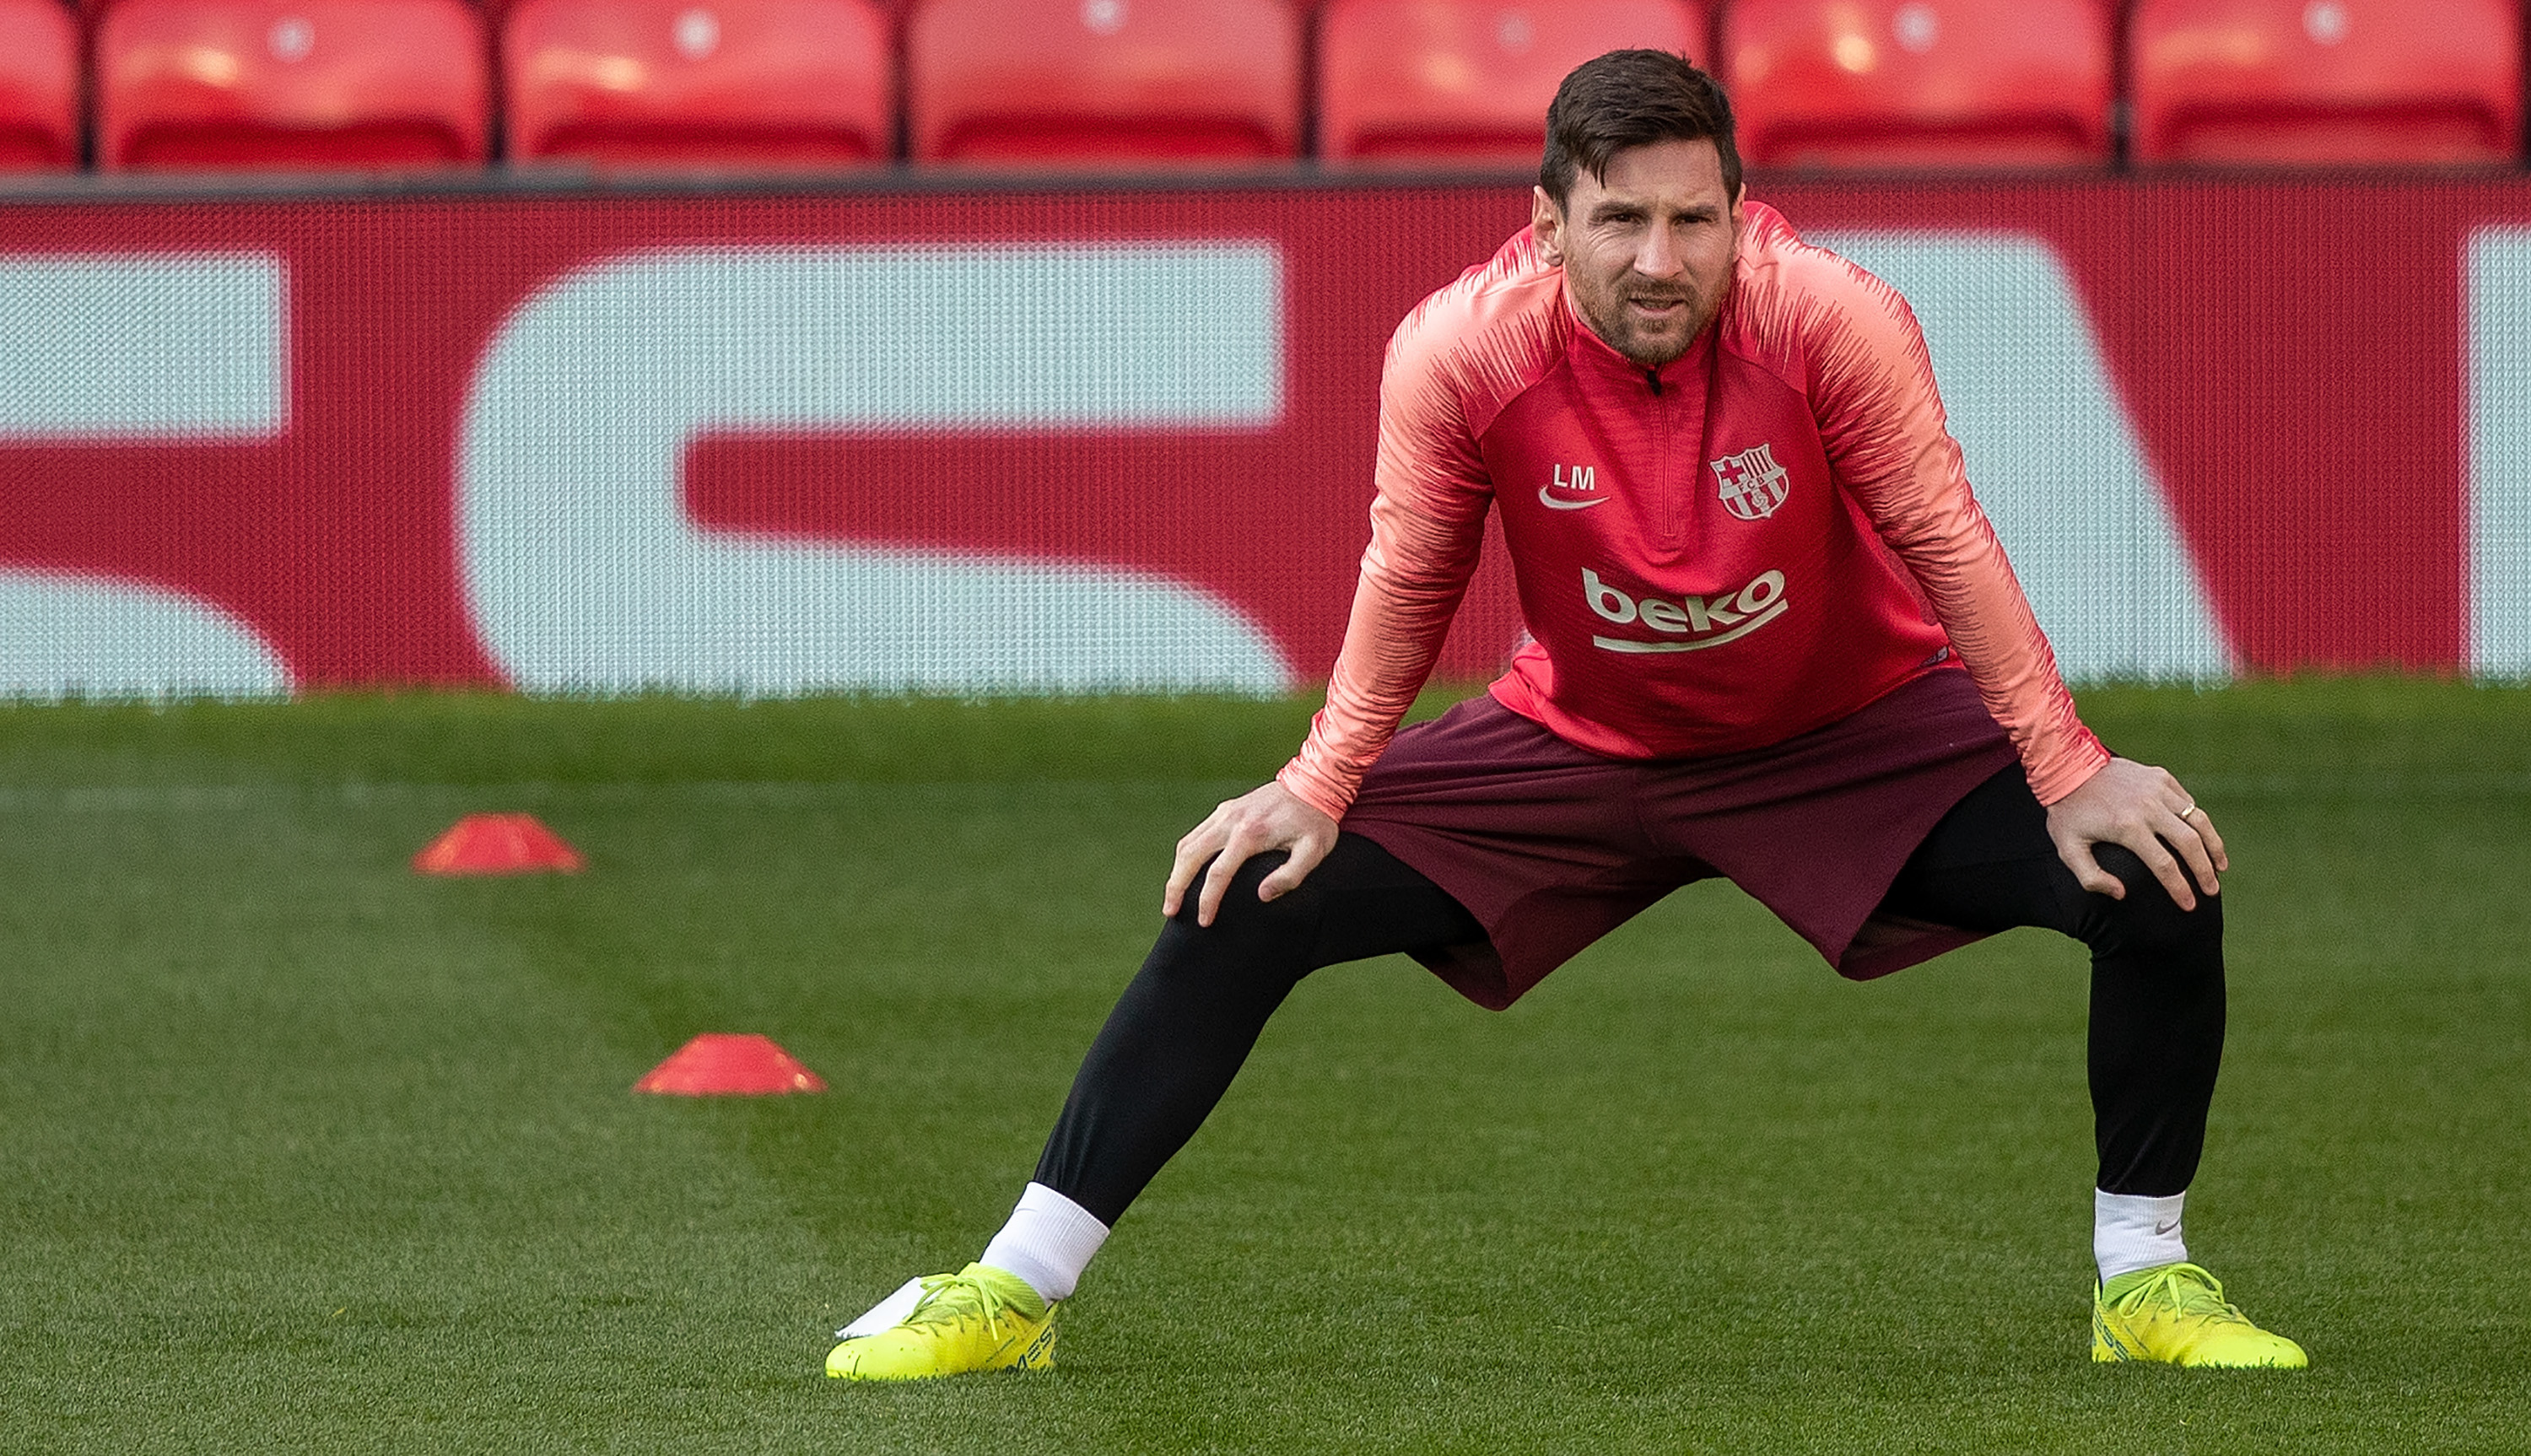 Barcelona were without Lionel Messi in Bilbao